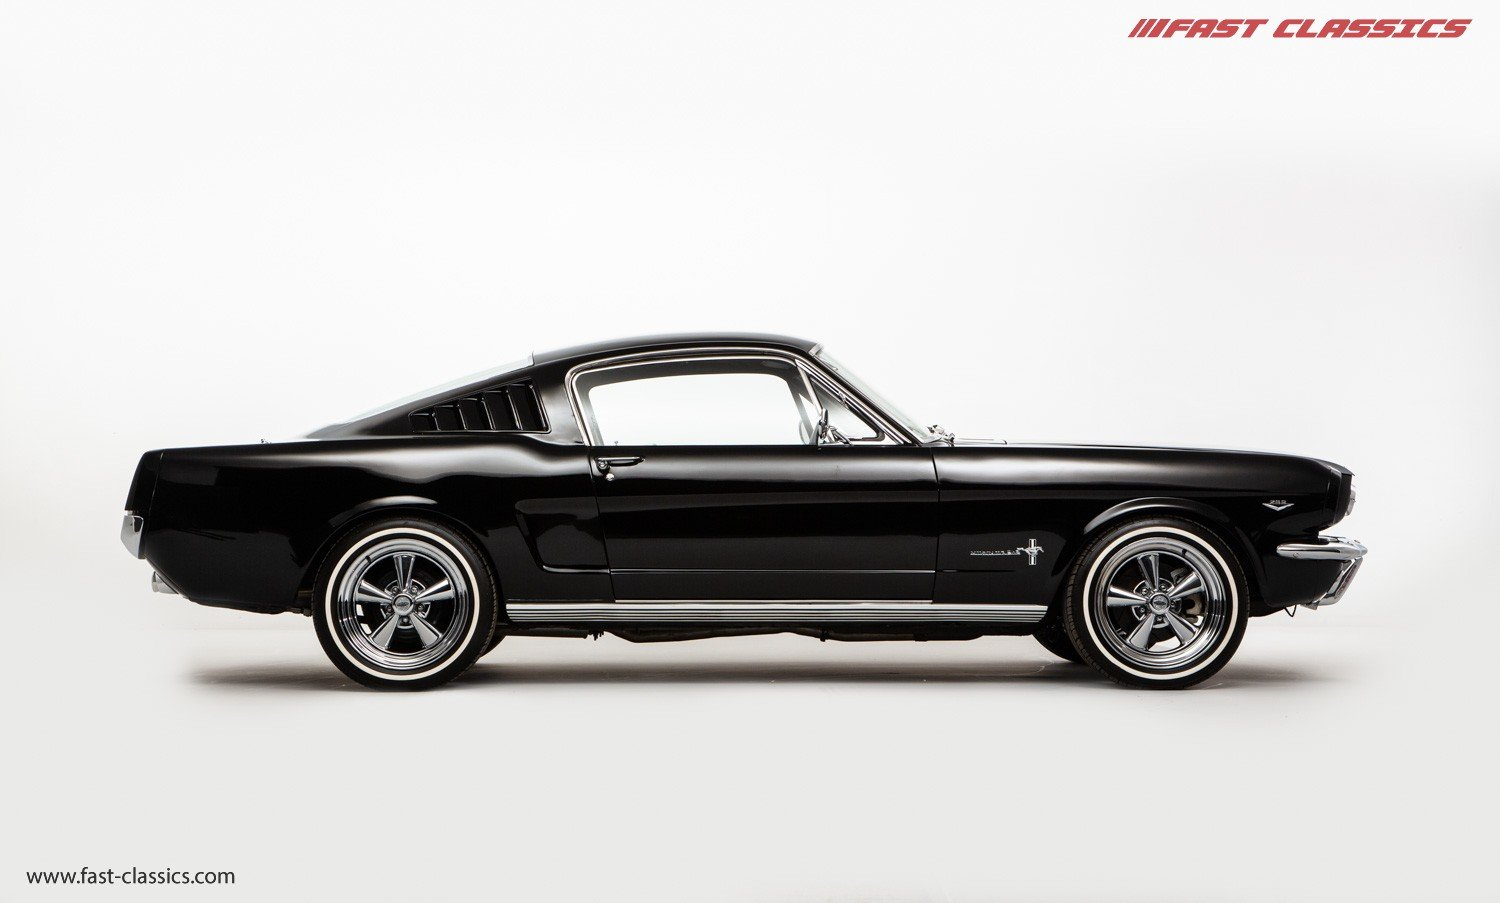 1966 FORD MUSTANG FASTBACK // 289 FASTBACK // RHD CONVERSION  For Sale (picture 1 of 22)